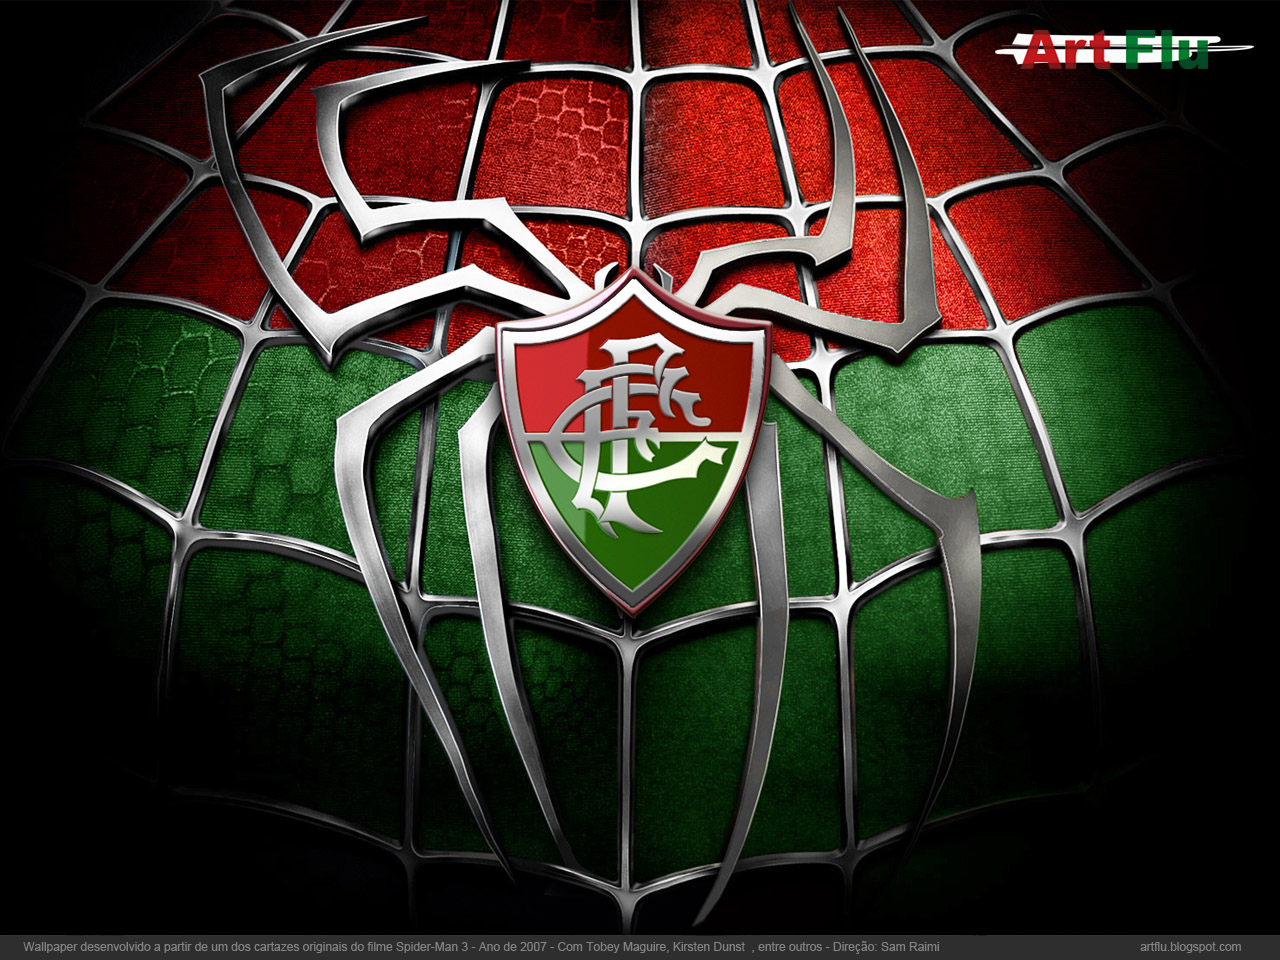 http://3.bp.blogspot.com/-GU0qOlD48-k/UOYeO7dLd3I/AAAAAAABGQE/UkJBzPqISTE/s1600/wallpaper-do-fluminense-wallpapers+(14).jpg